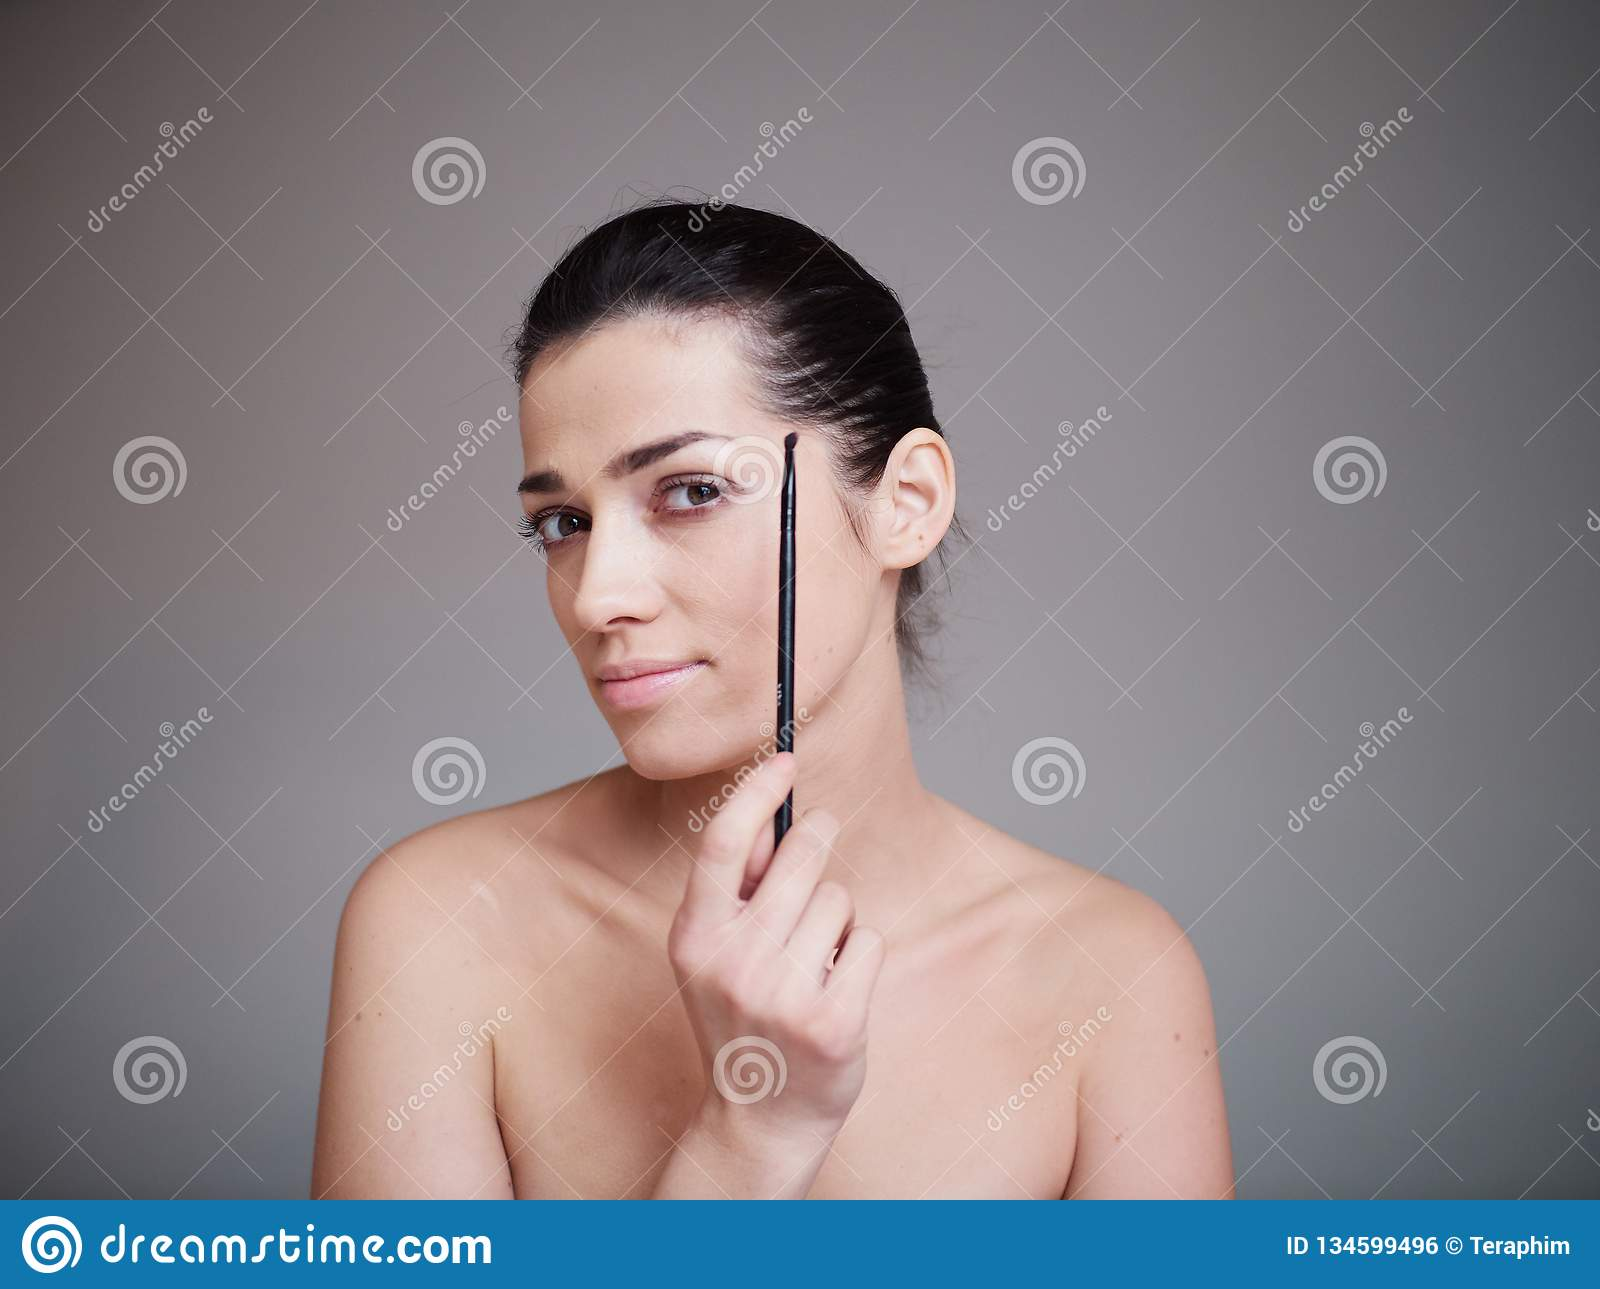 Beauty portrait of healthy female face with natural skin isolated on grey background. Make up concept